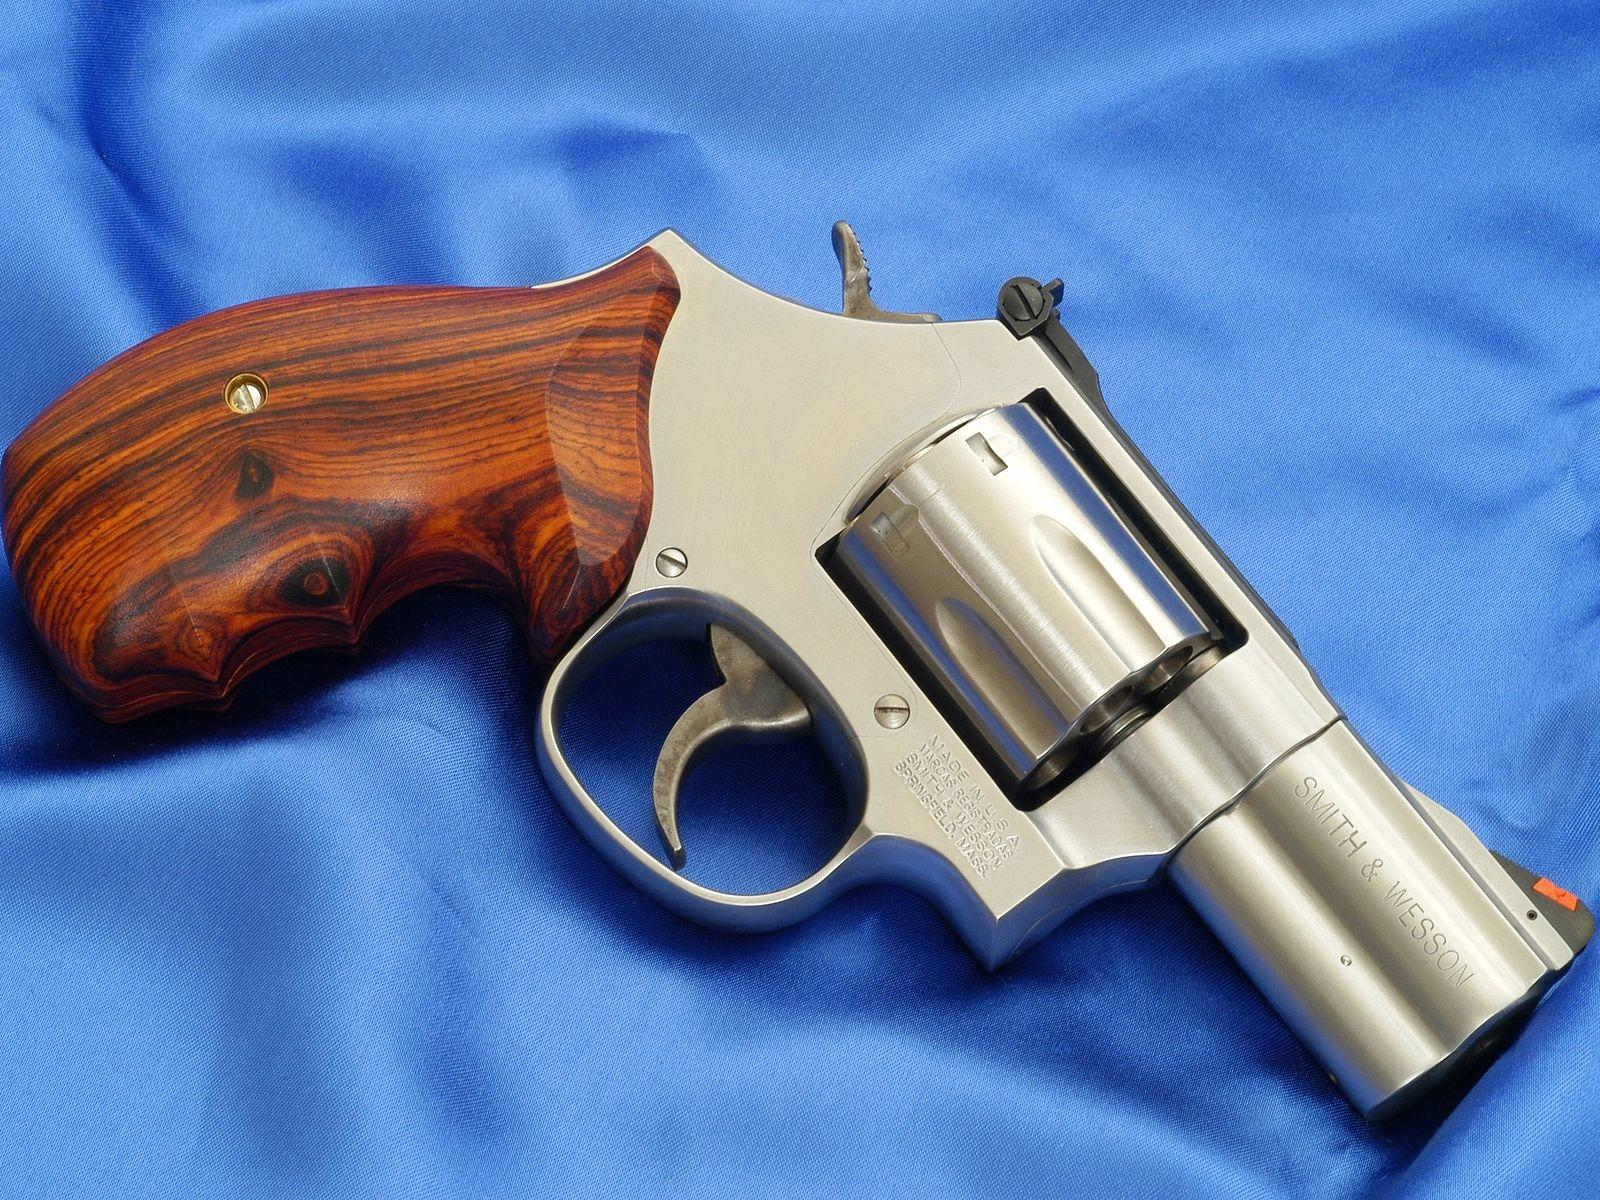 dating smith wesson revolver A look back at the smith & wesson j policemen pushed smith & wesson to begin offering the revolver with powerful handgun cartridge to date, the 500 smith.